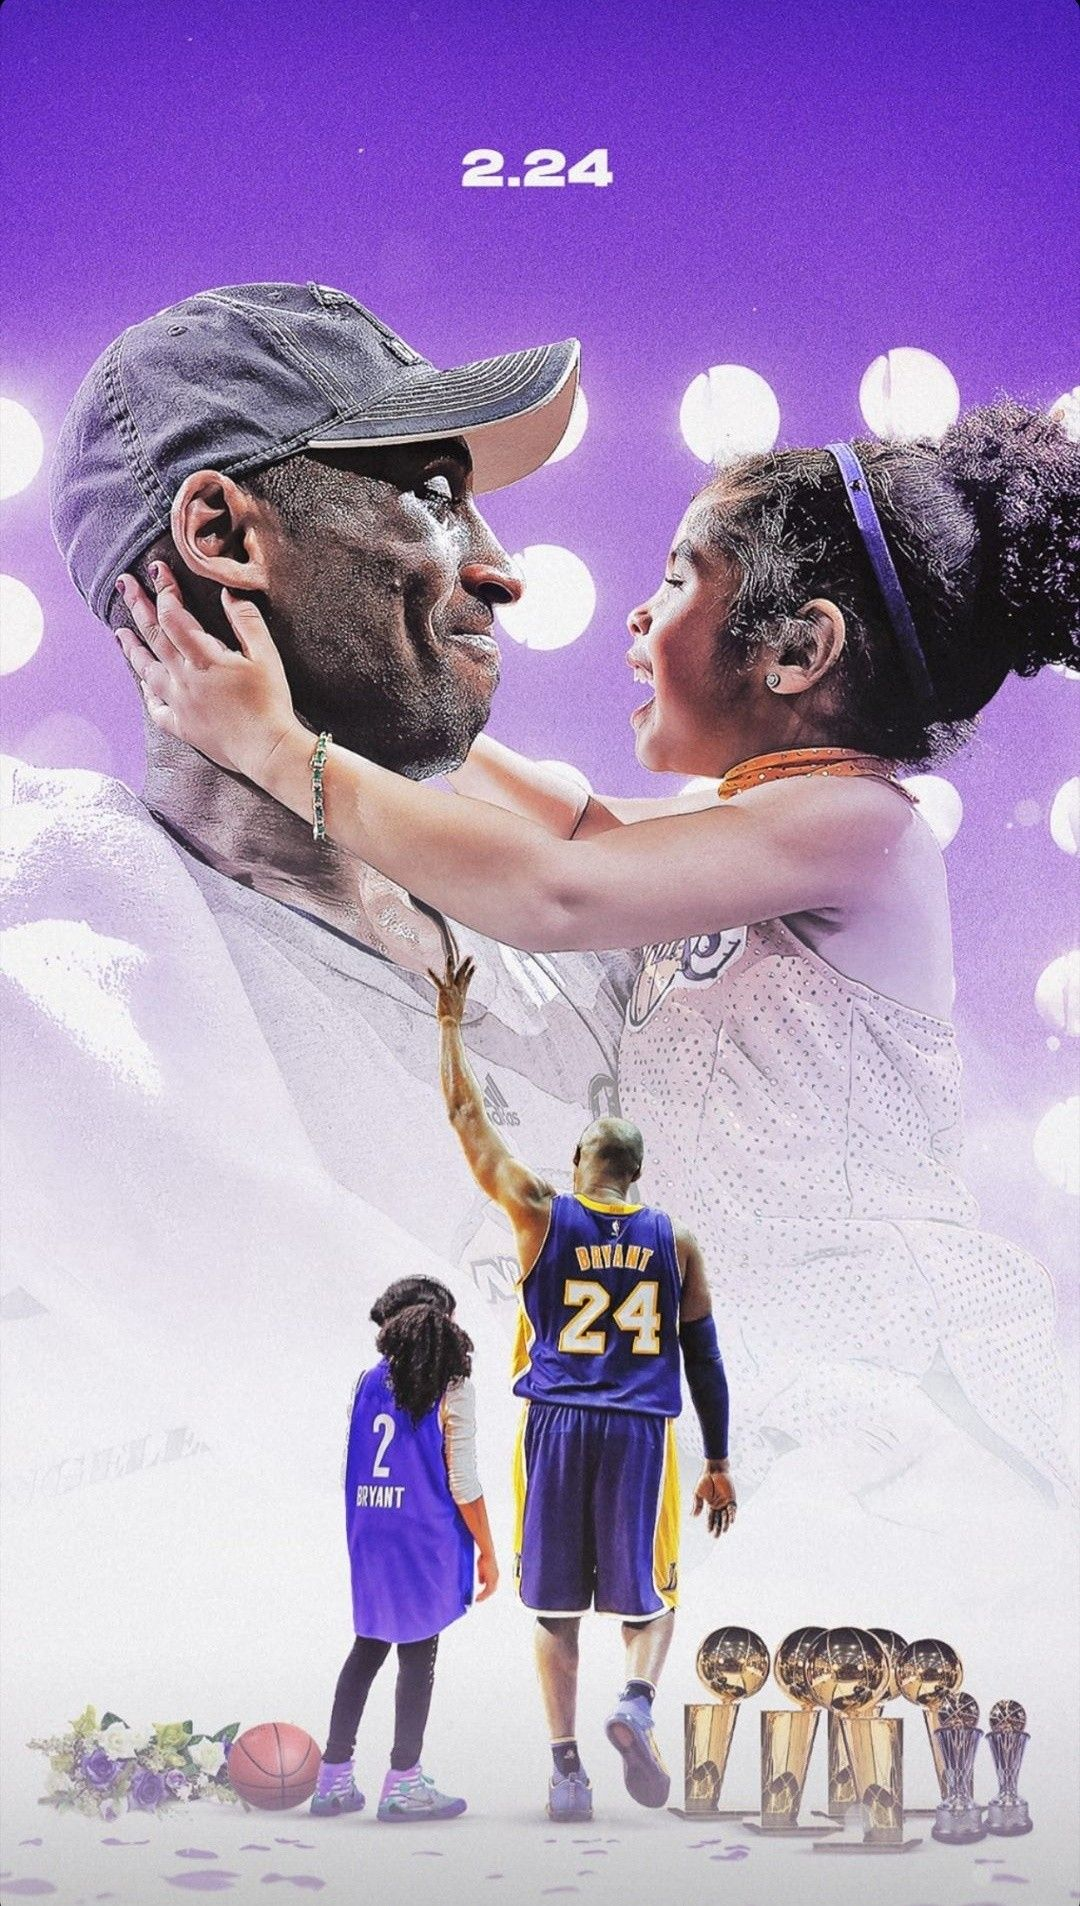 Kobe And Gigi Bryant Wallpaper In 2020 Kobe Bryant Pictures Kobe Bryant Wallpaper Lakers Kobe Bryant